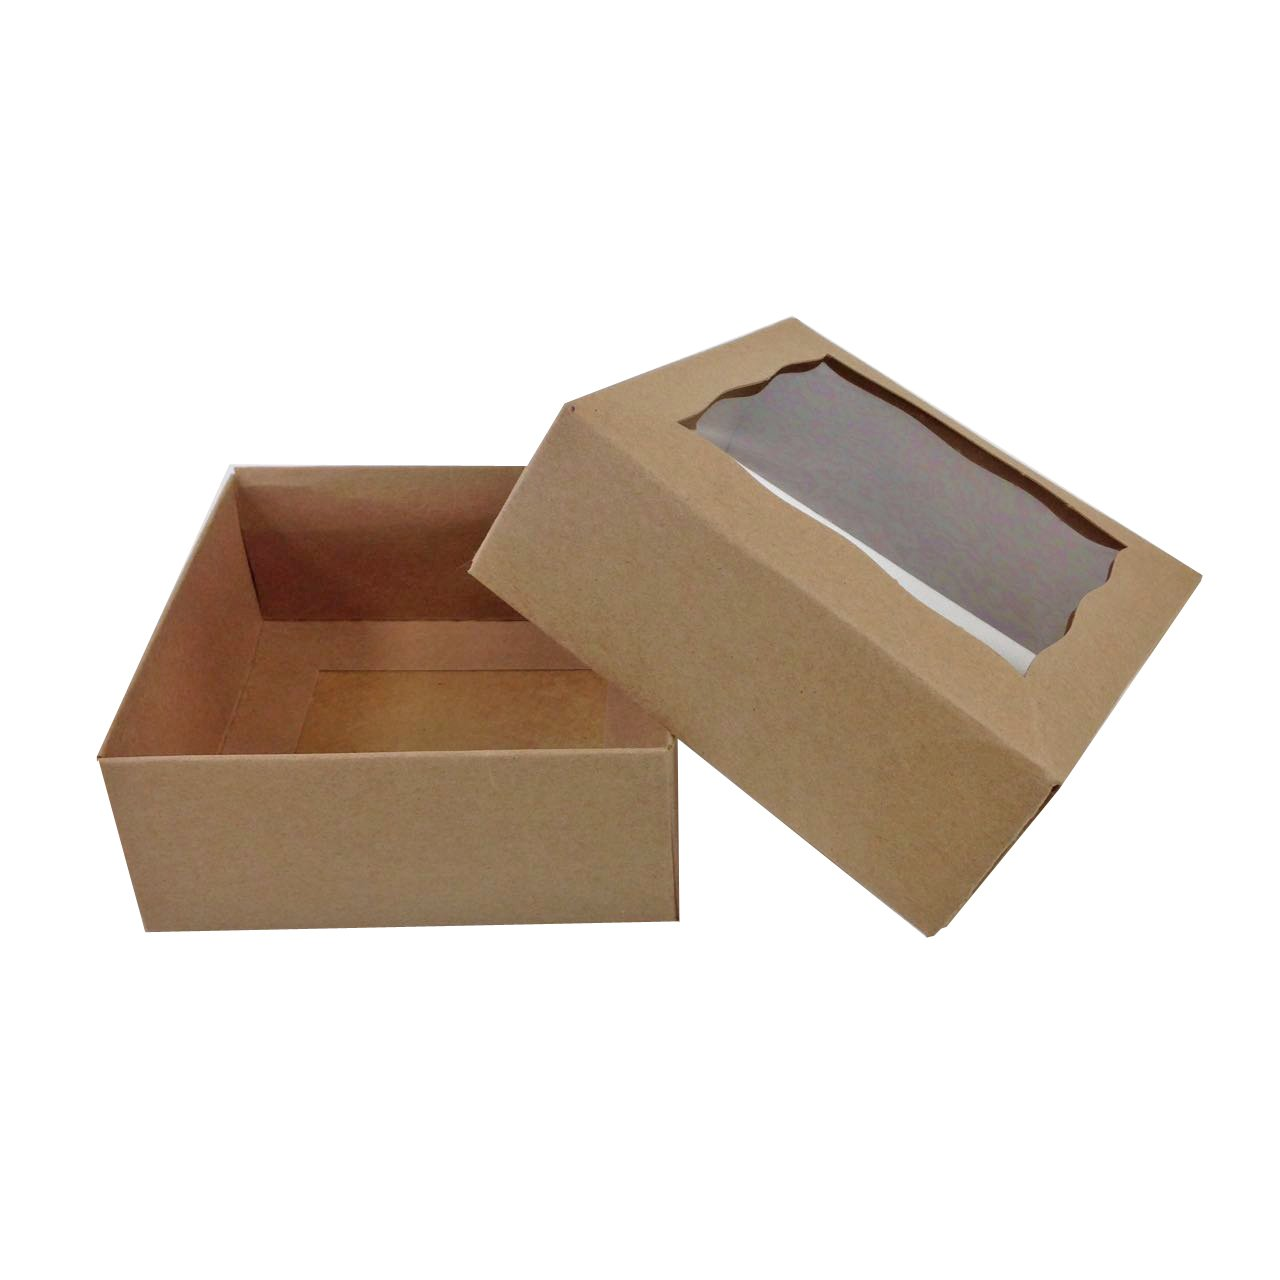 Black Cat Avenue 4'' x 4'' x 1 3/4'' Kraft Brown Cookie Gift Boxes with Window Chocolate Treat Favor Bakery Boxes, 5 Count